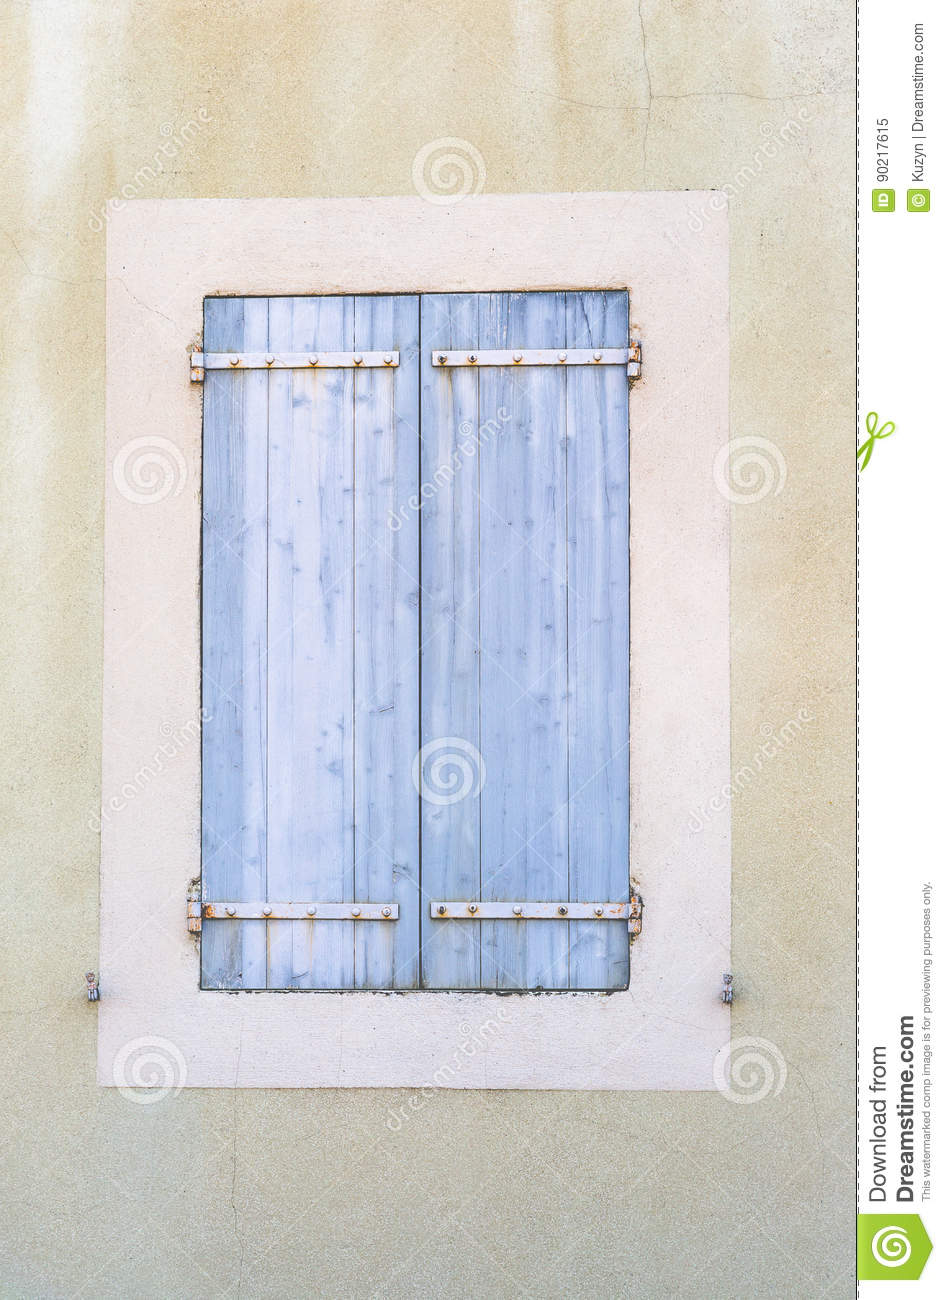 Old Vintage Rustic Blue Closed Windows Shutters French Style